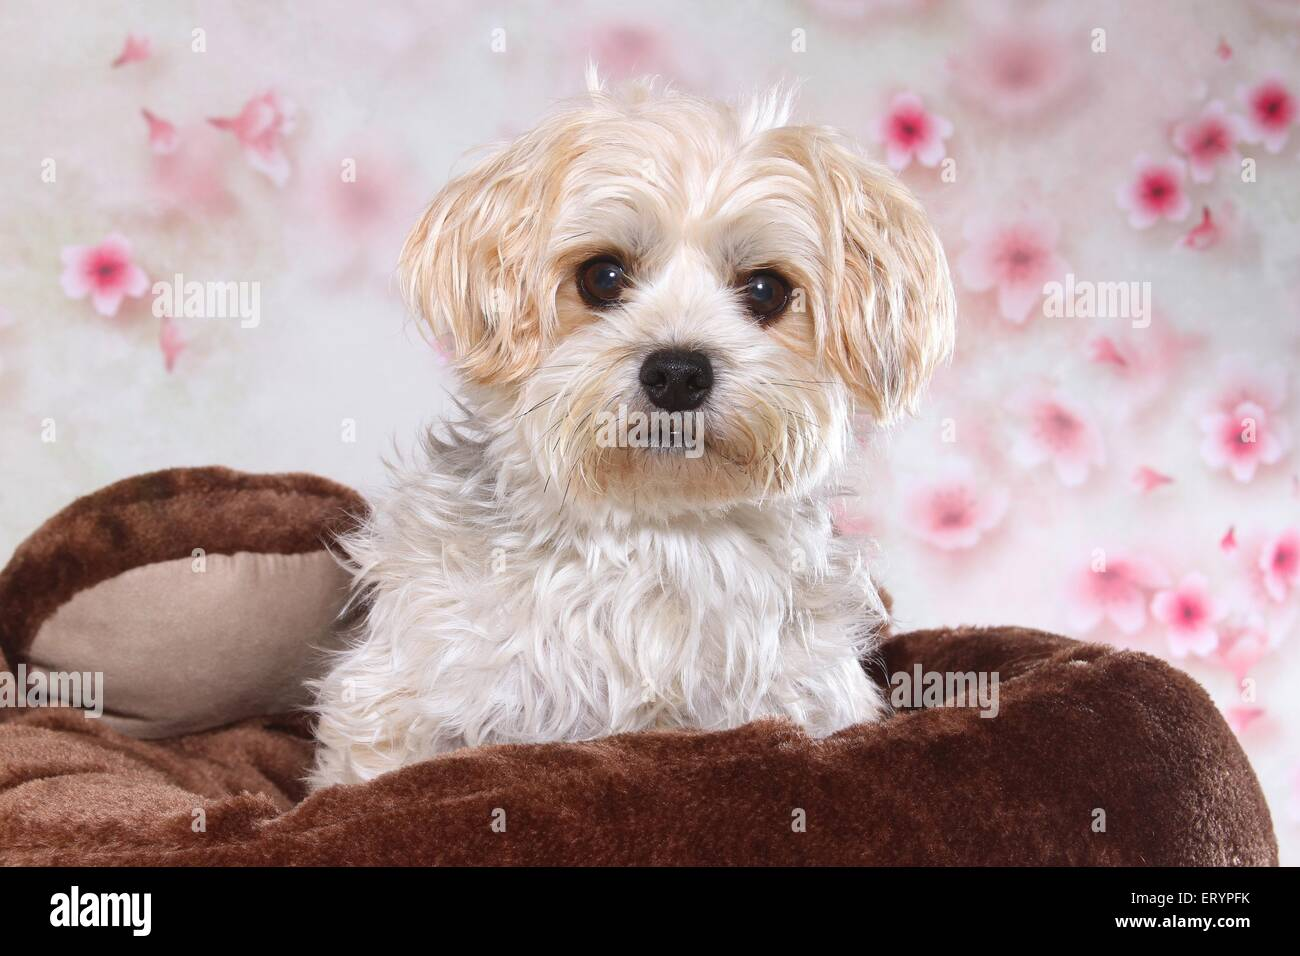 Golddust Yorkshire Terrier Portrait Stock Photo 83588951 Alamy